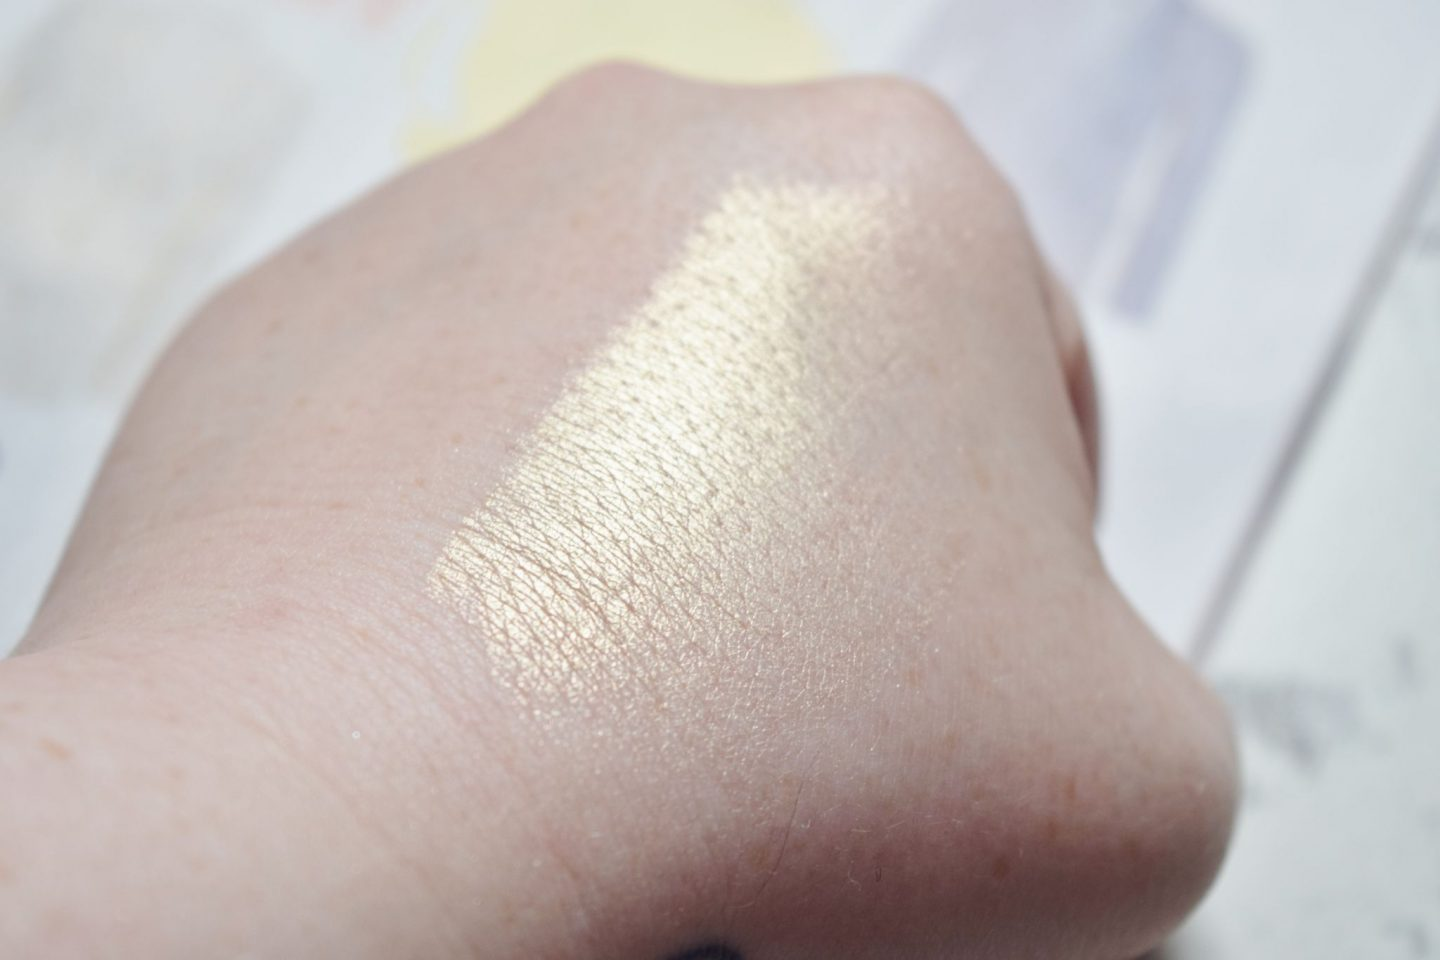 Kiko Milano Gold Waves Highlighter in 01 Golden Vibes swatch